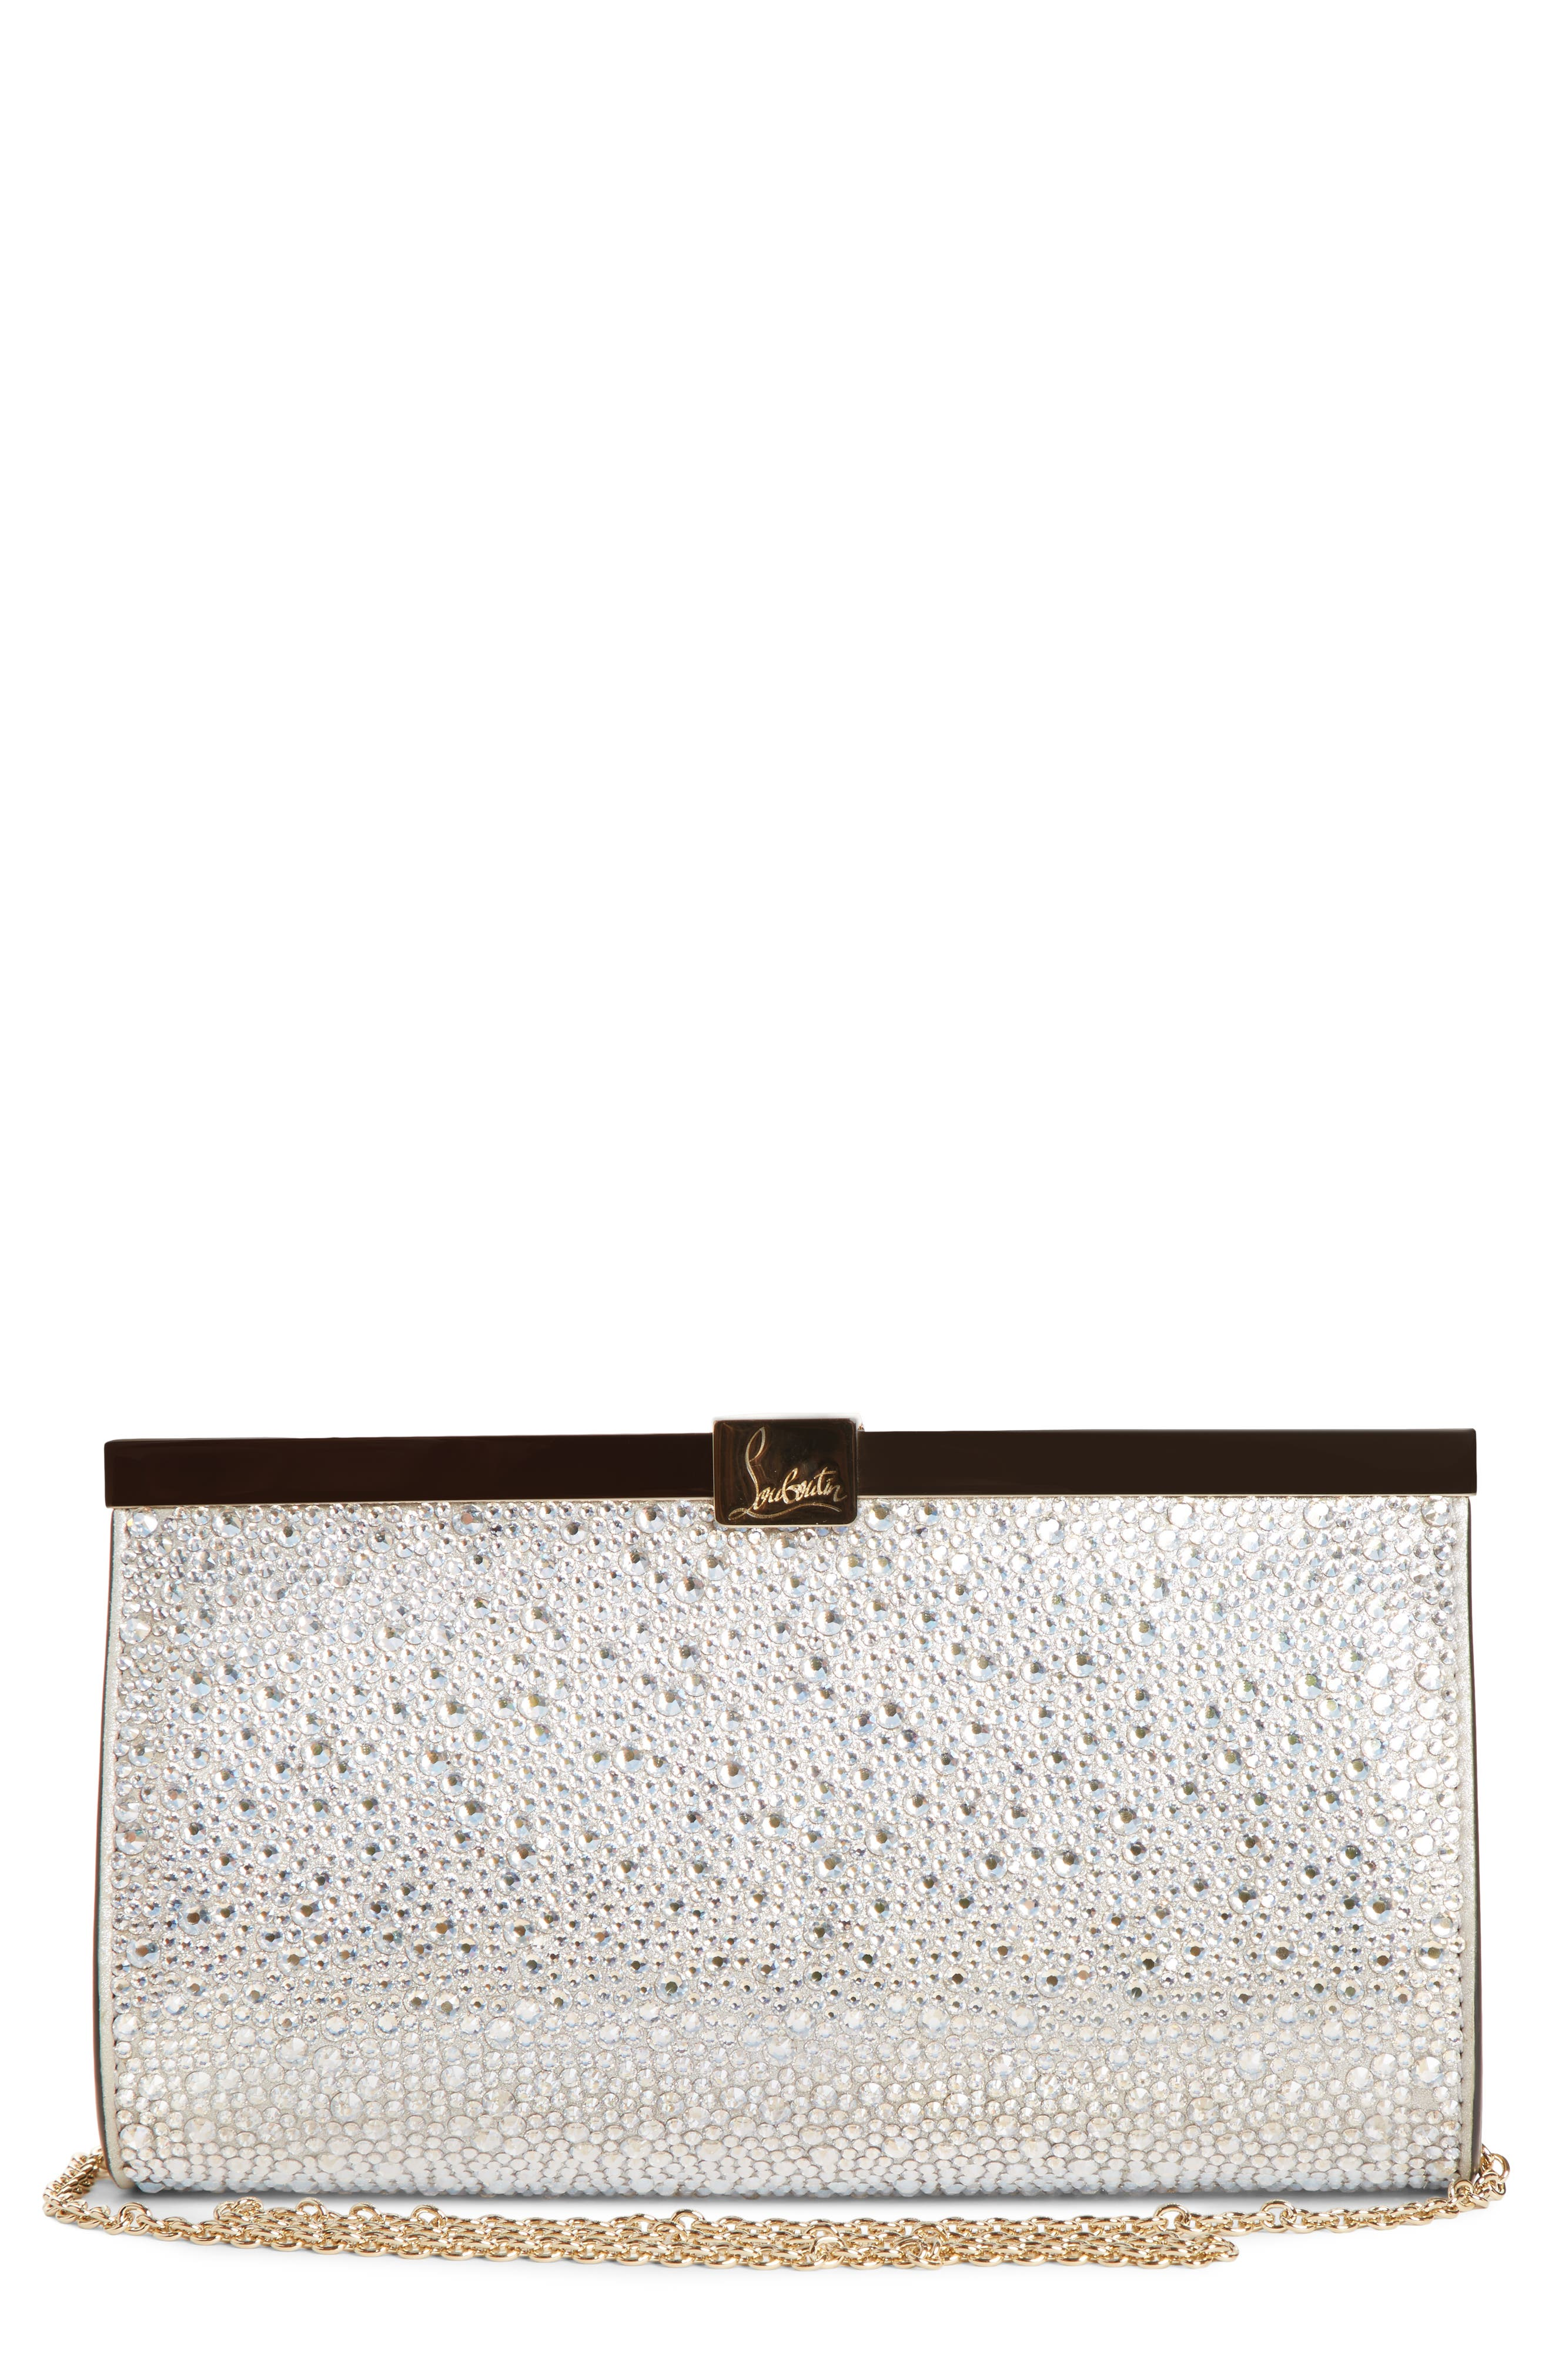 Christian Louboutin Small Palmette Crystal Embellished Clutch | Nordstrom